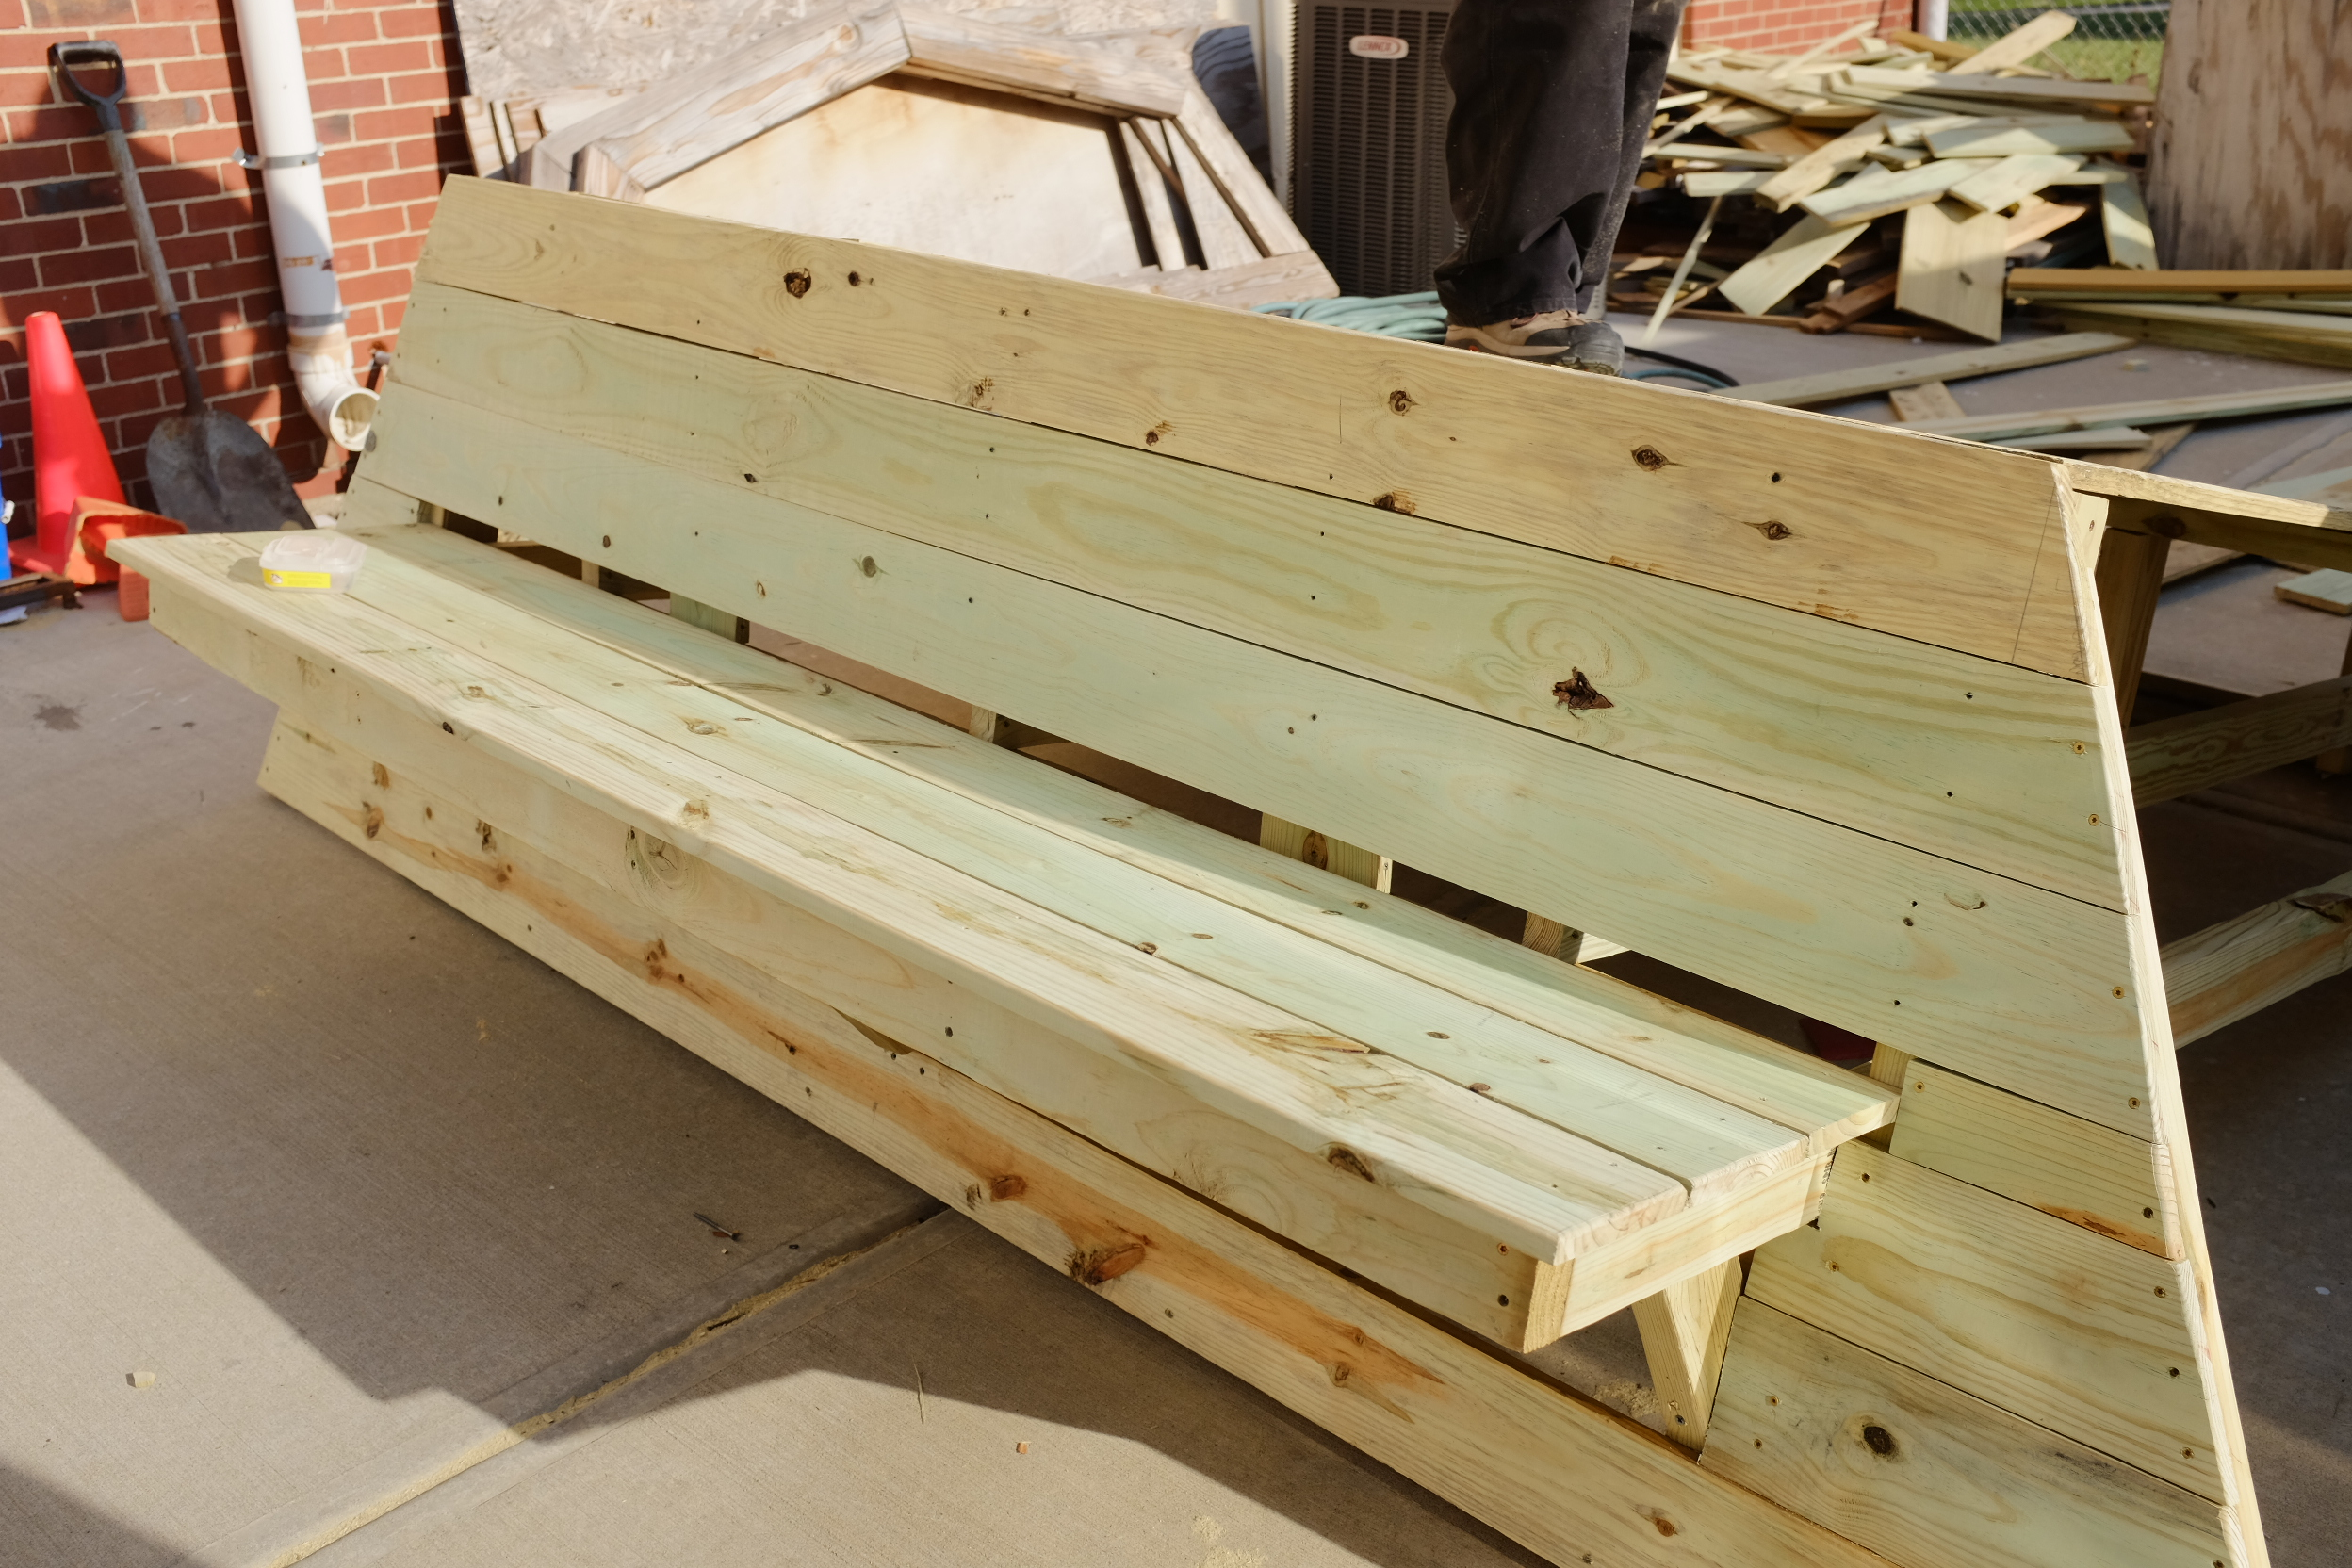 An unfinished Porch/Bench, designed to provide a space to sit and relax.